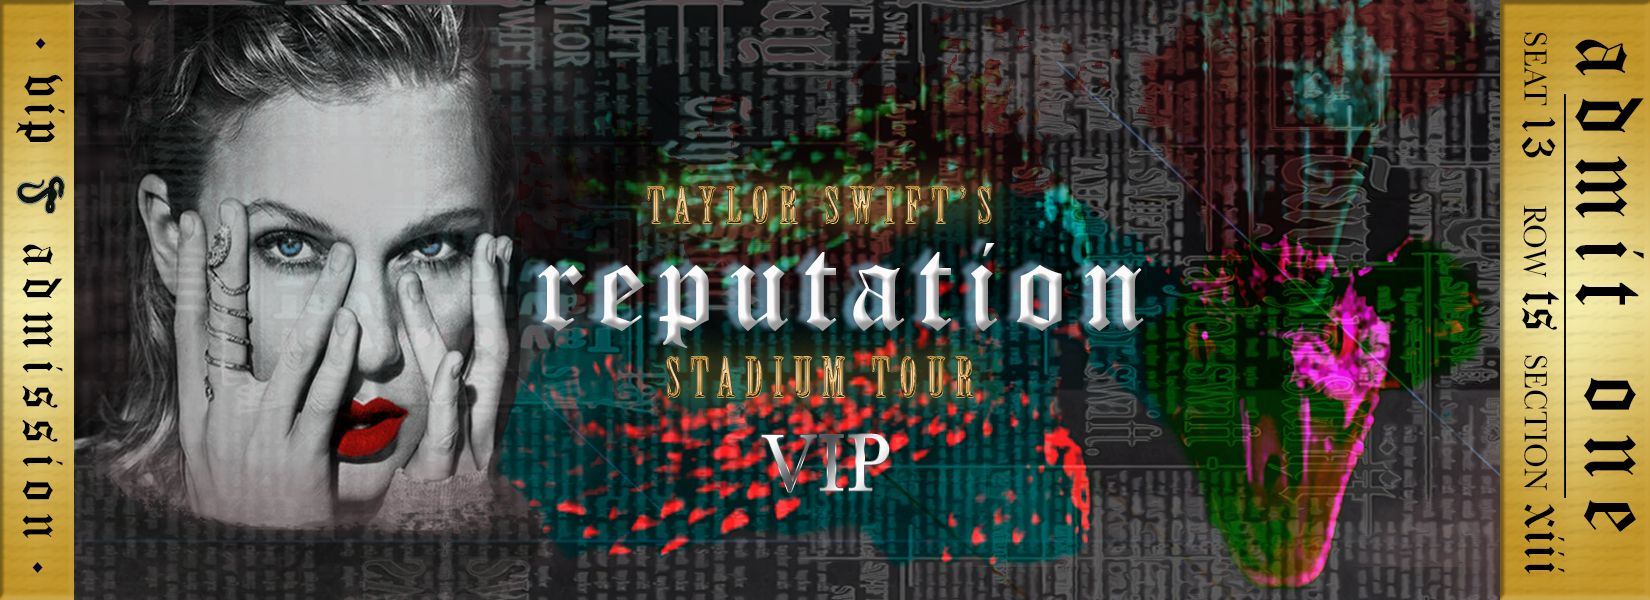 My Version Of The Taylor Swift Reputation Statium Tour Vip Ticket Trying To Make It Look Lenticular Was Fun